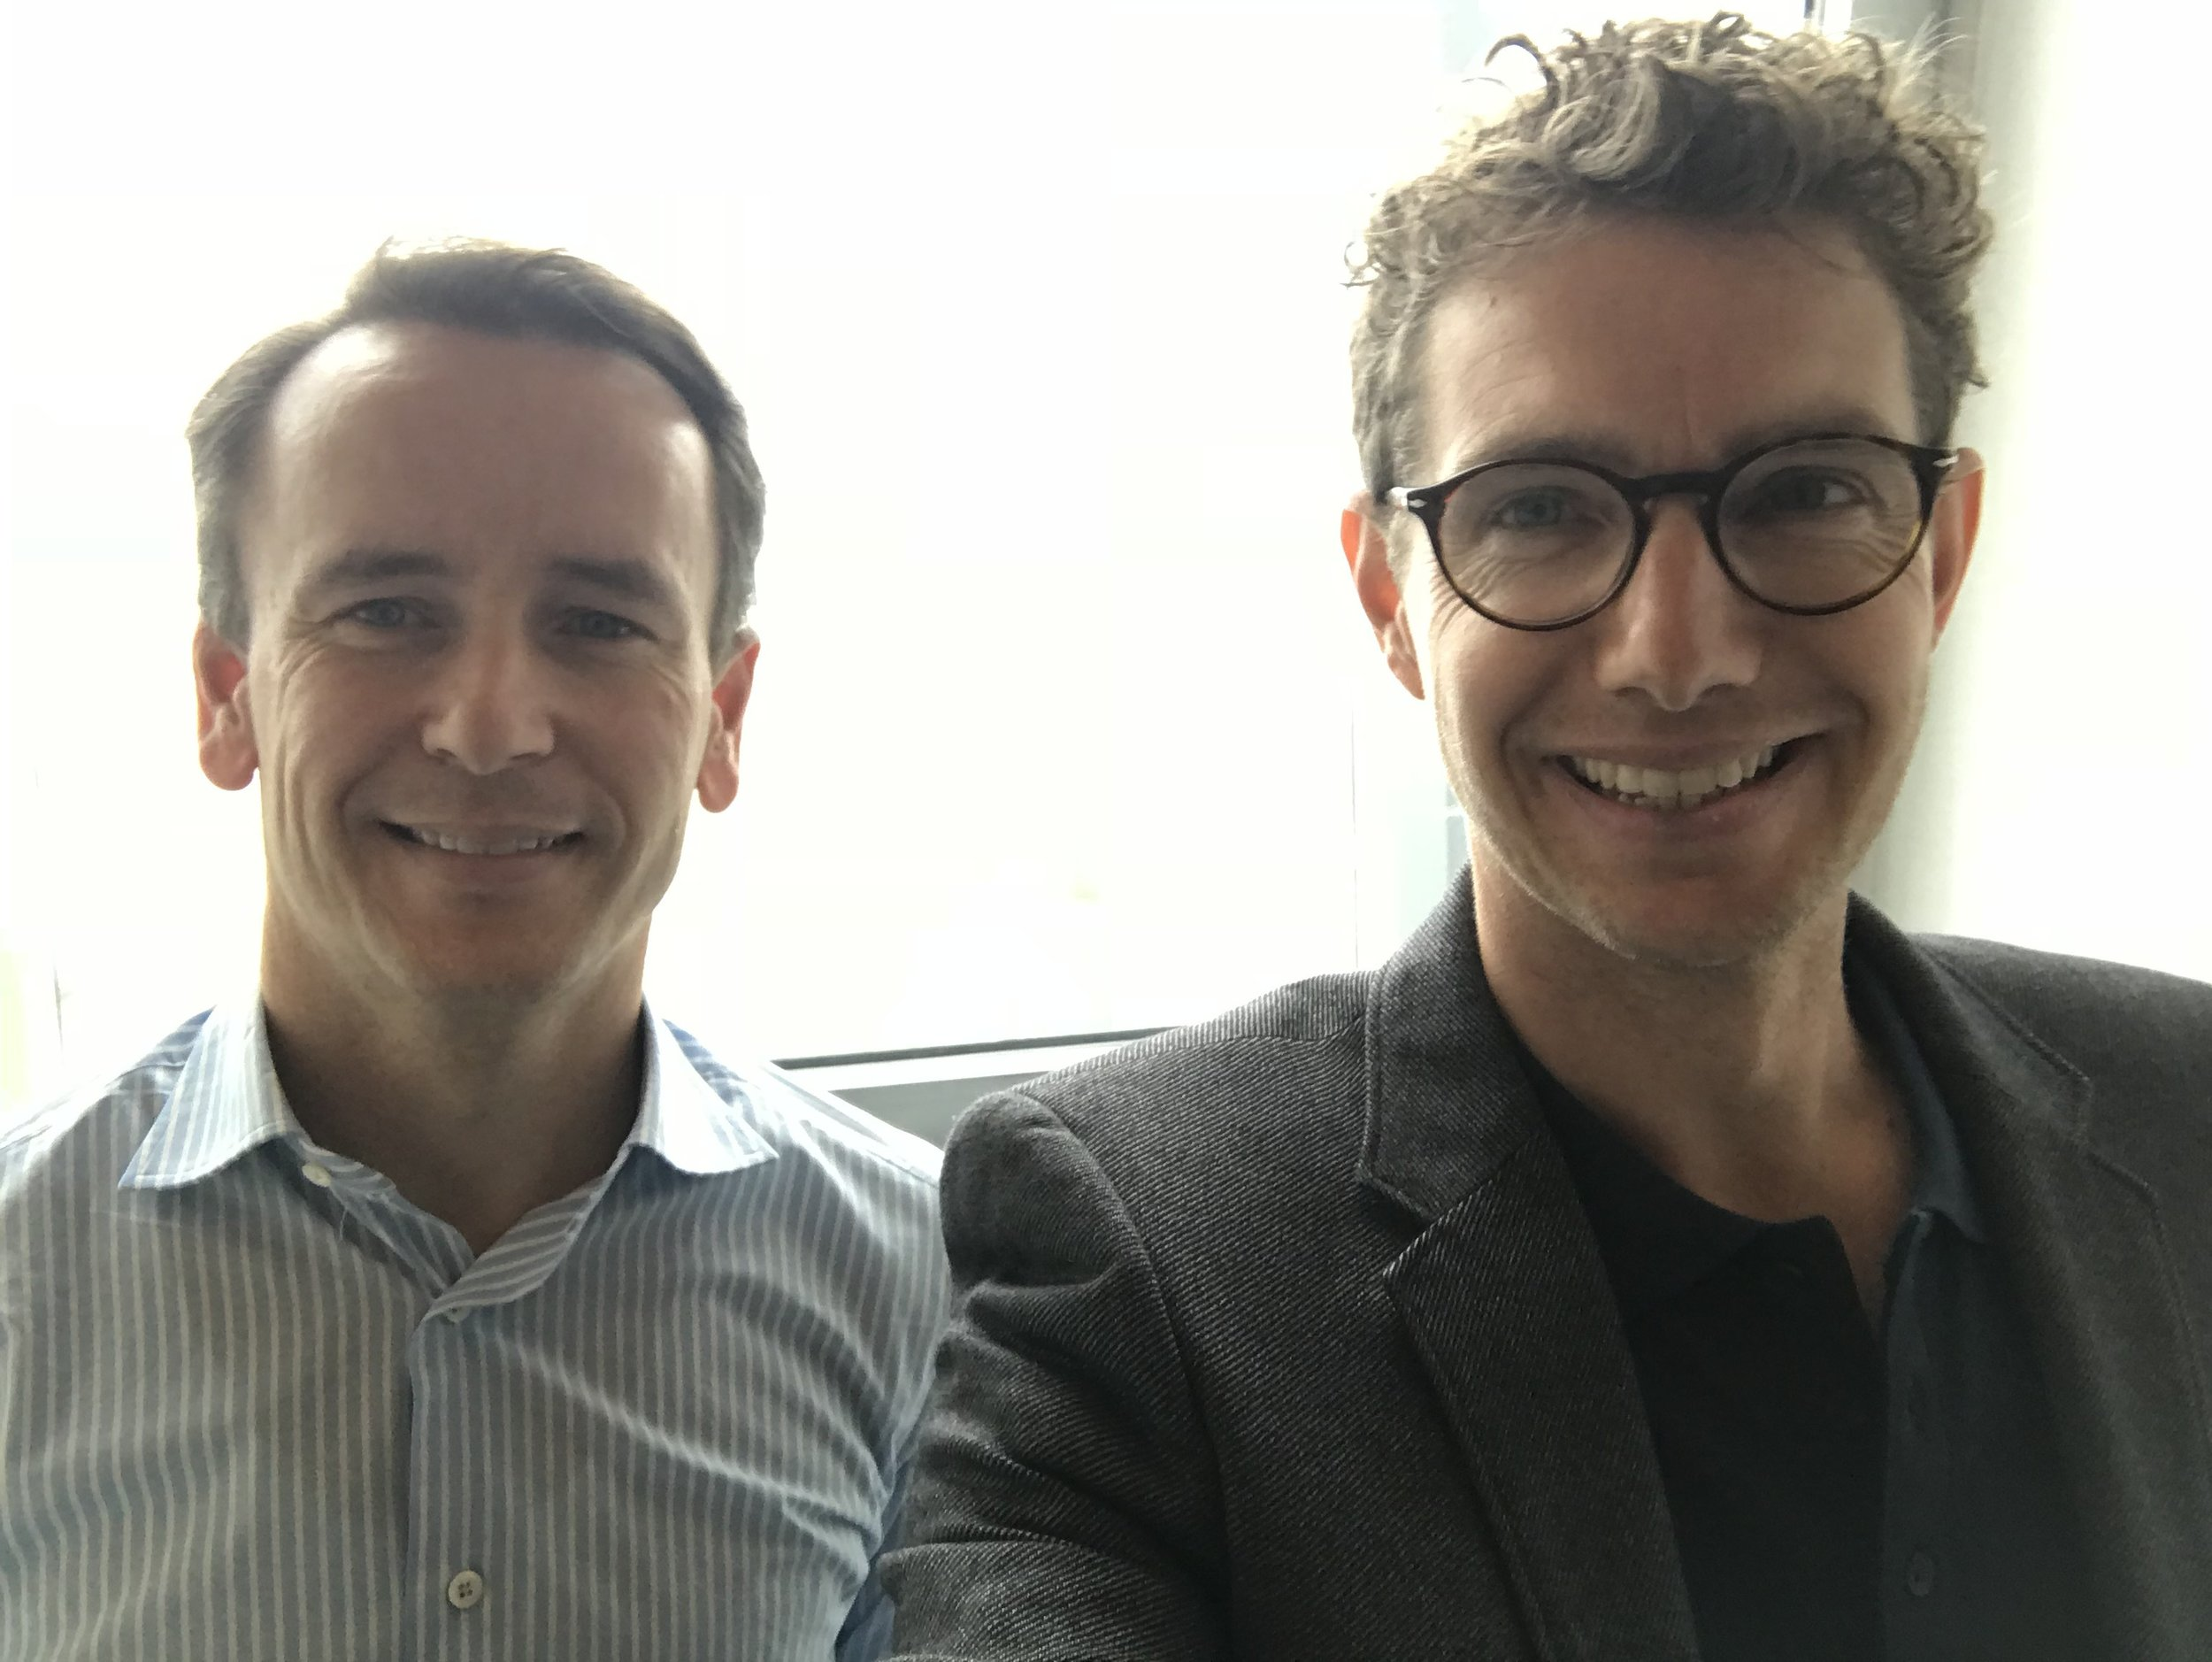 Joost de Graaf (left) and me after recording our conversation at the headquarters of Kempen in Amsterdam.